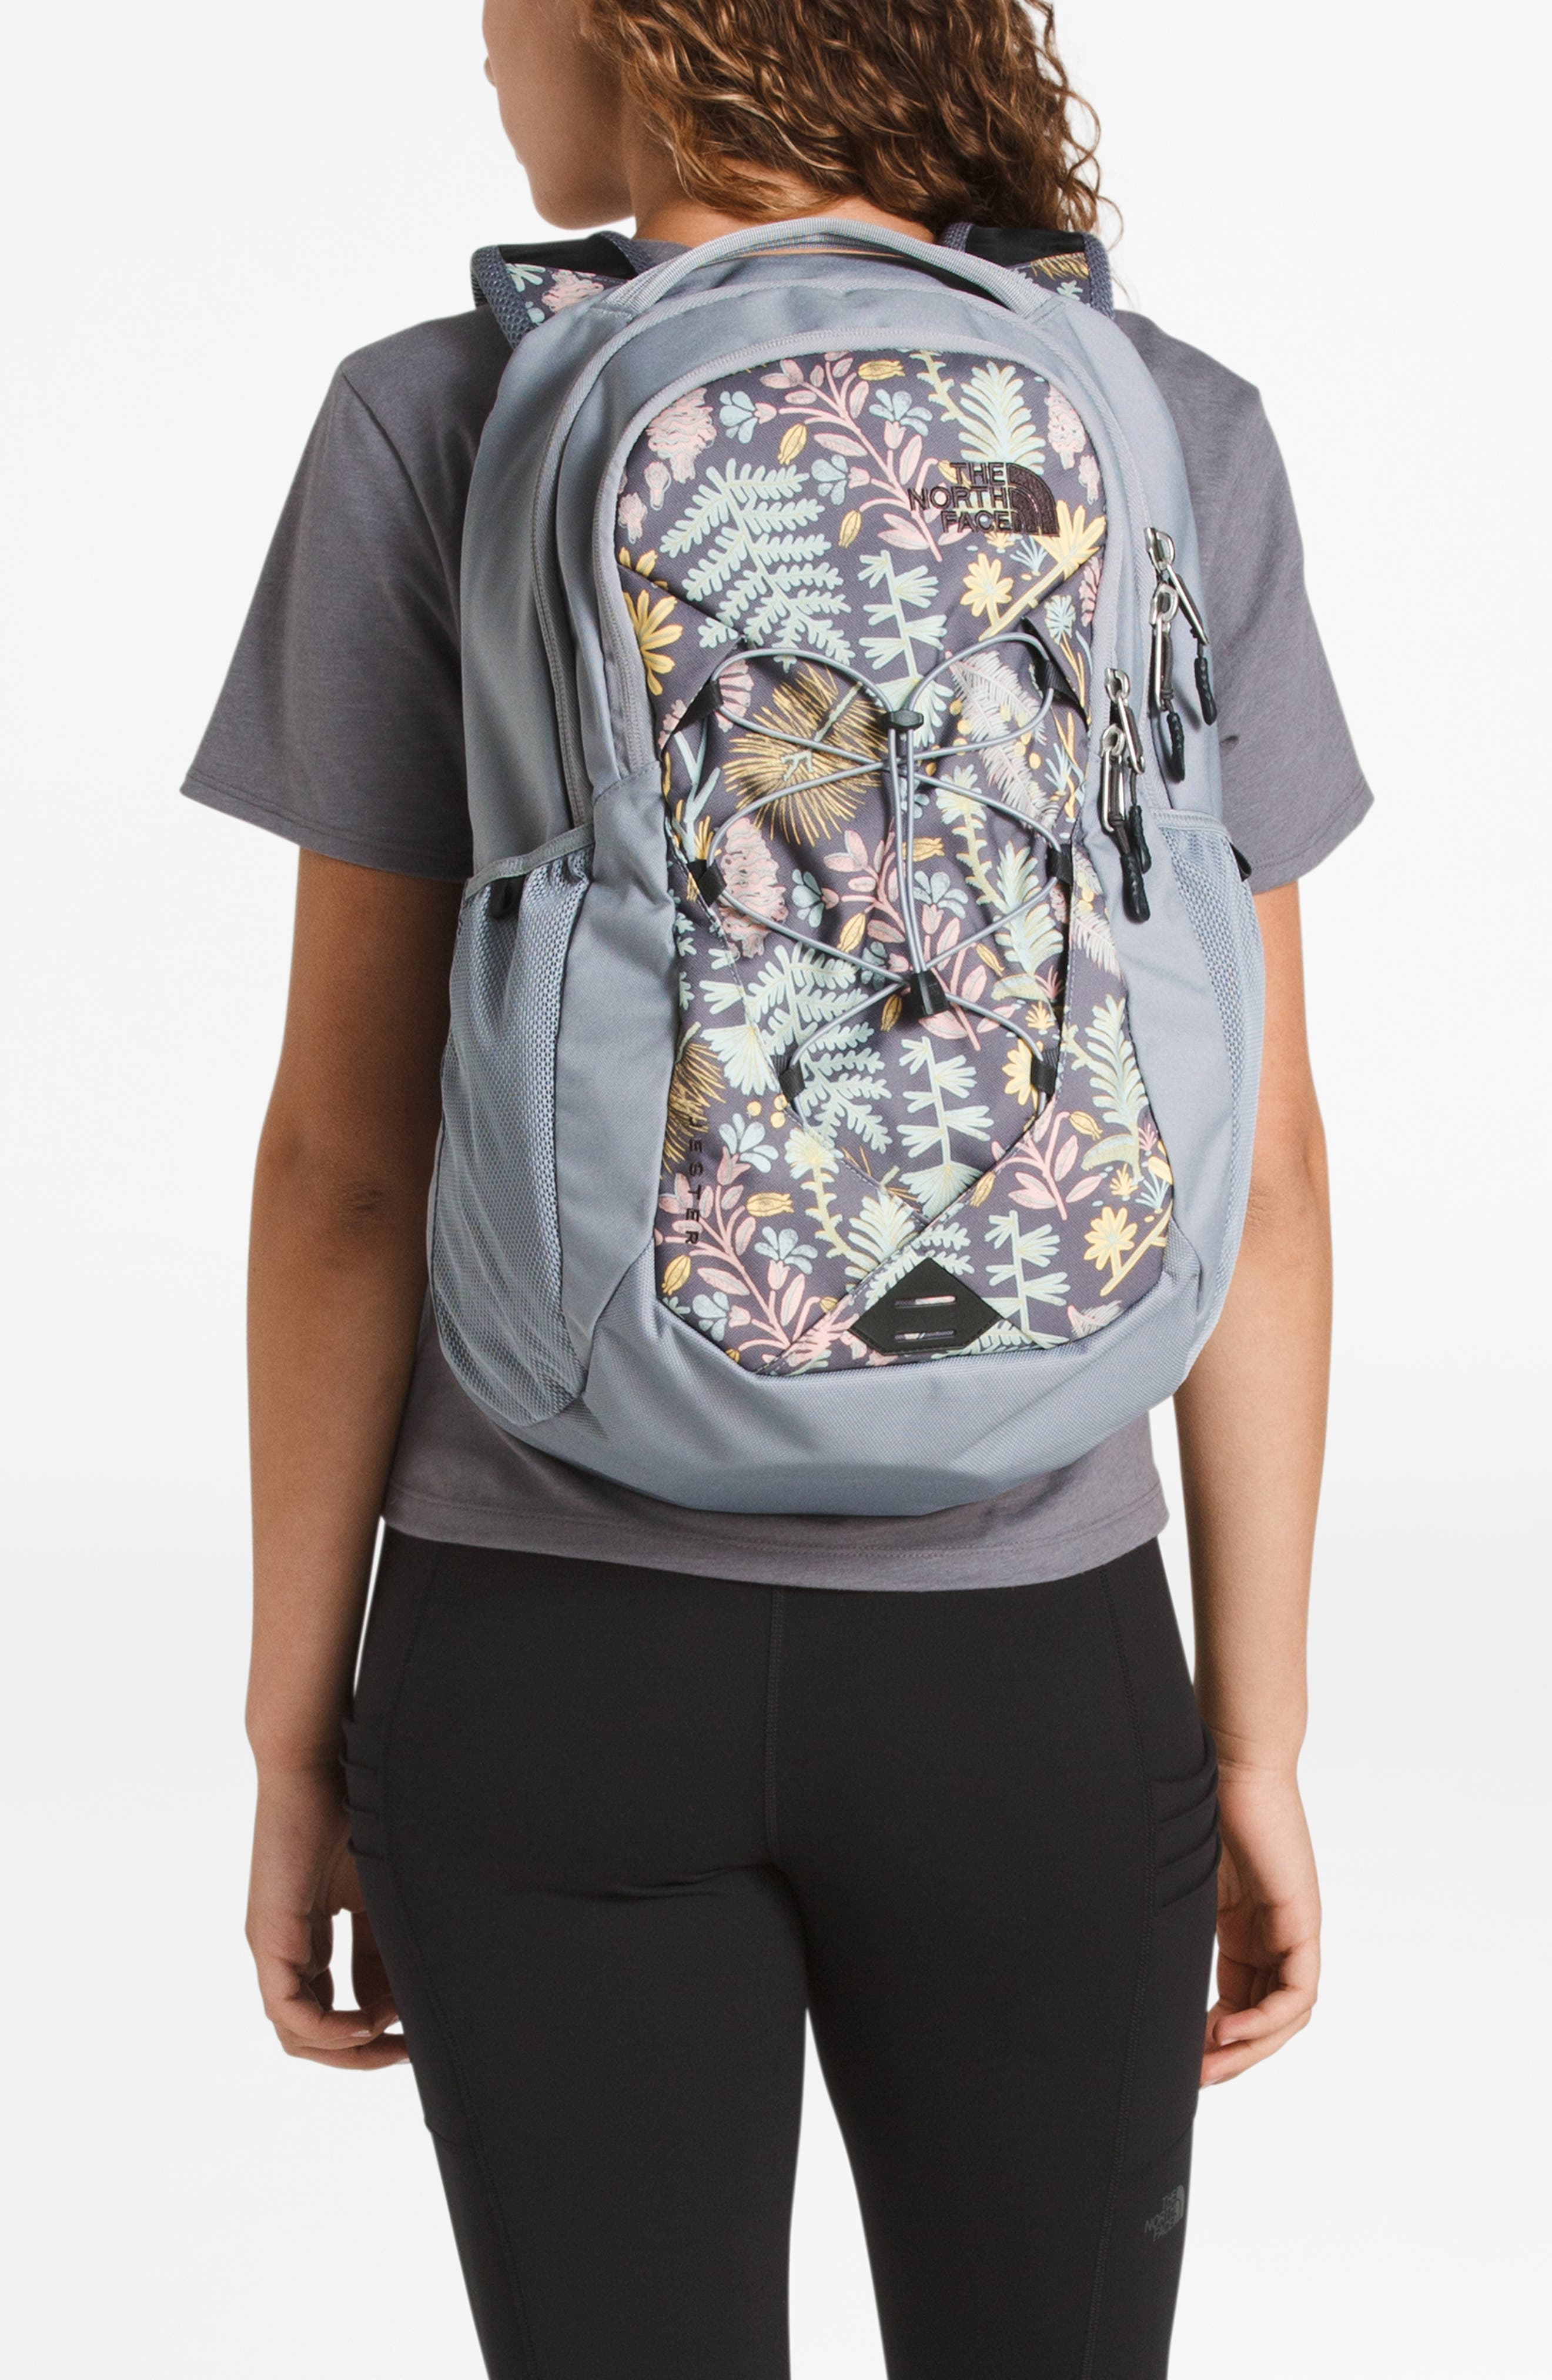 'Jester' Backpack,                             Alternate thumbnail 2, color,                             GREY FLORAL PRINT/ MID GREY